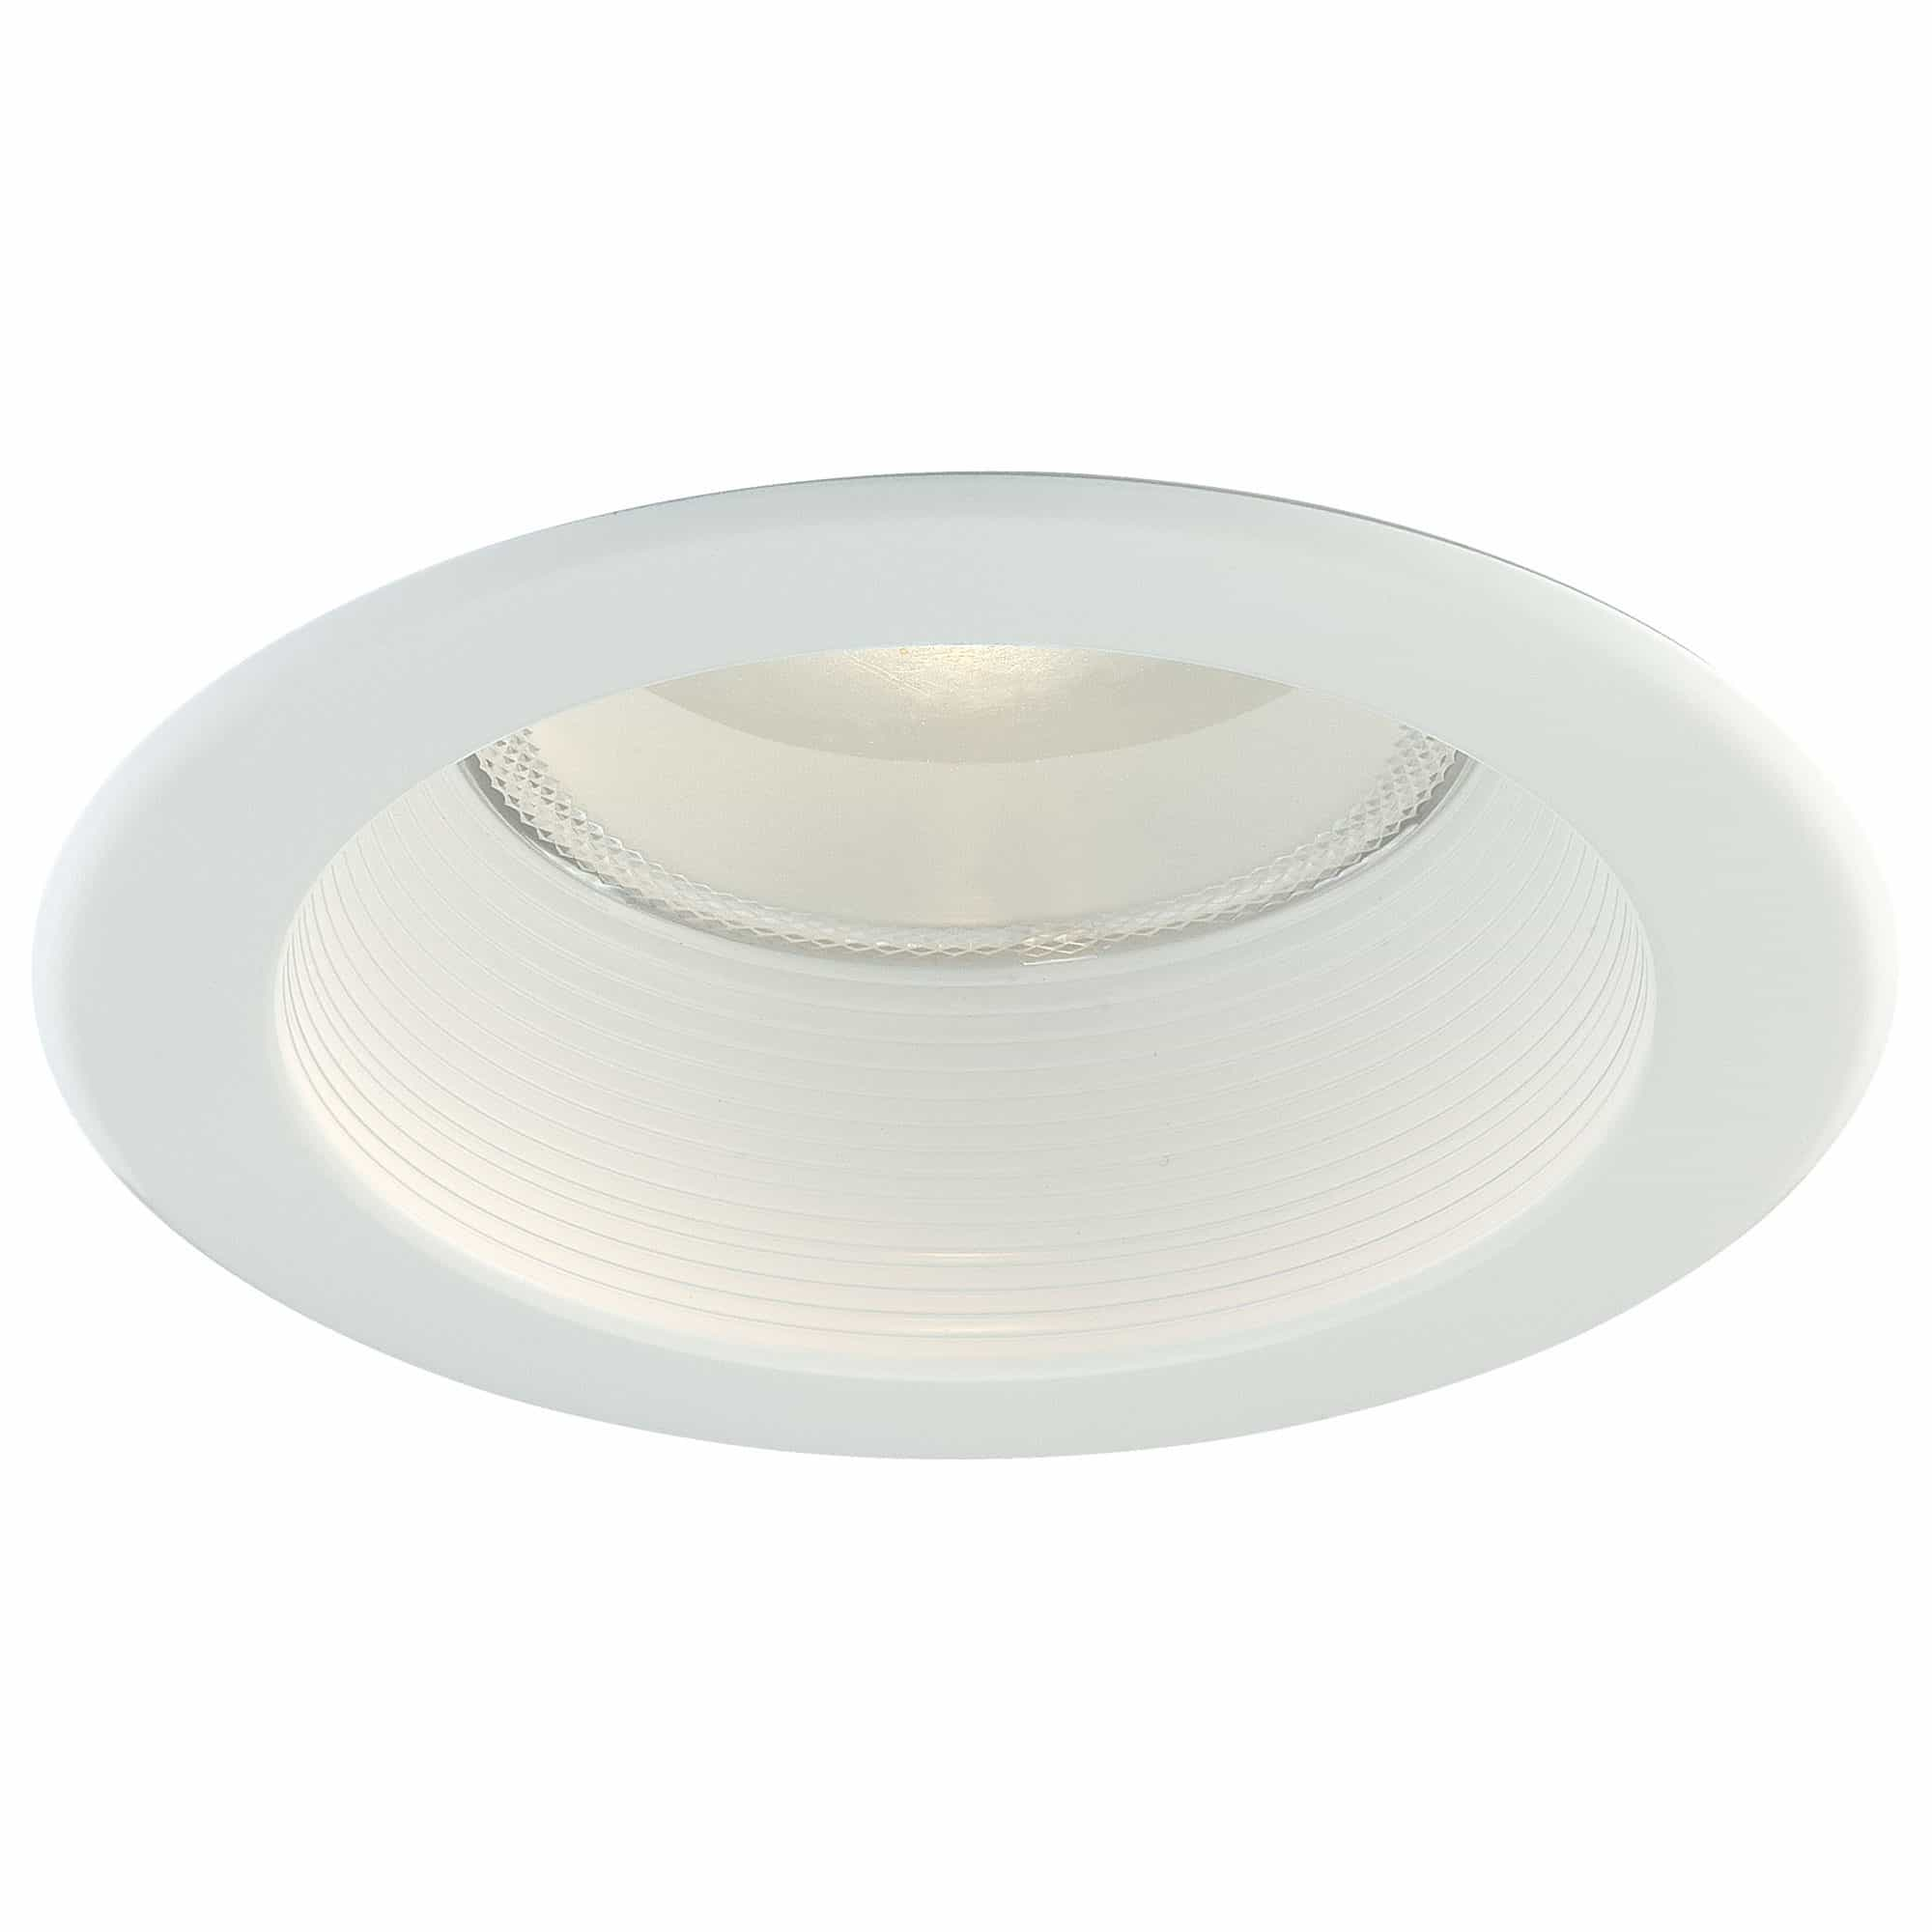 Recessed lighting williams electric 510 339 5601 oakland led lights recessed can 6 inch trim aloadofball Images